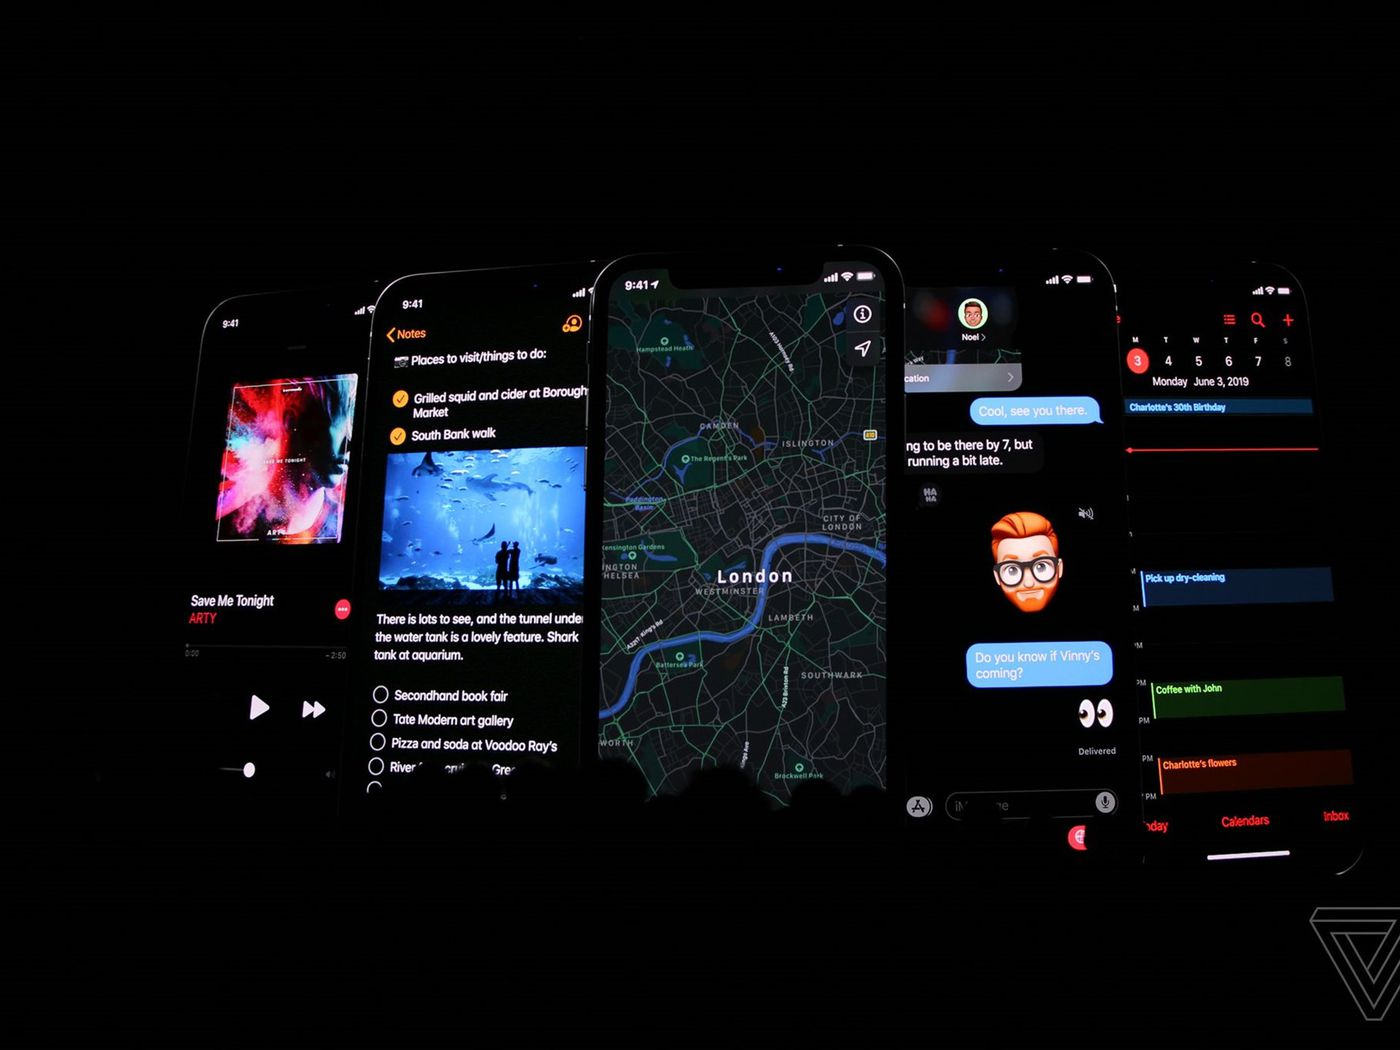 Dark mode is coming to iOS 13 - The Verge